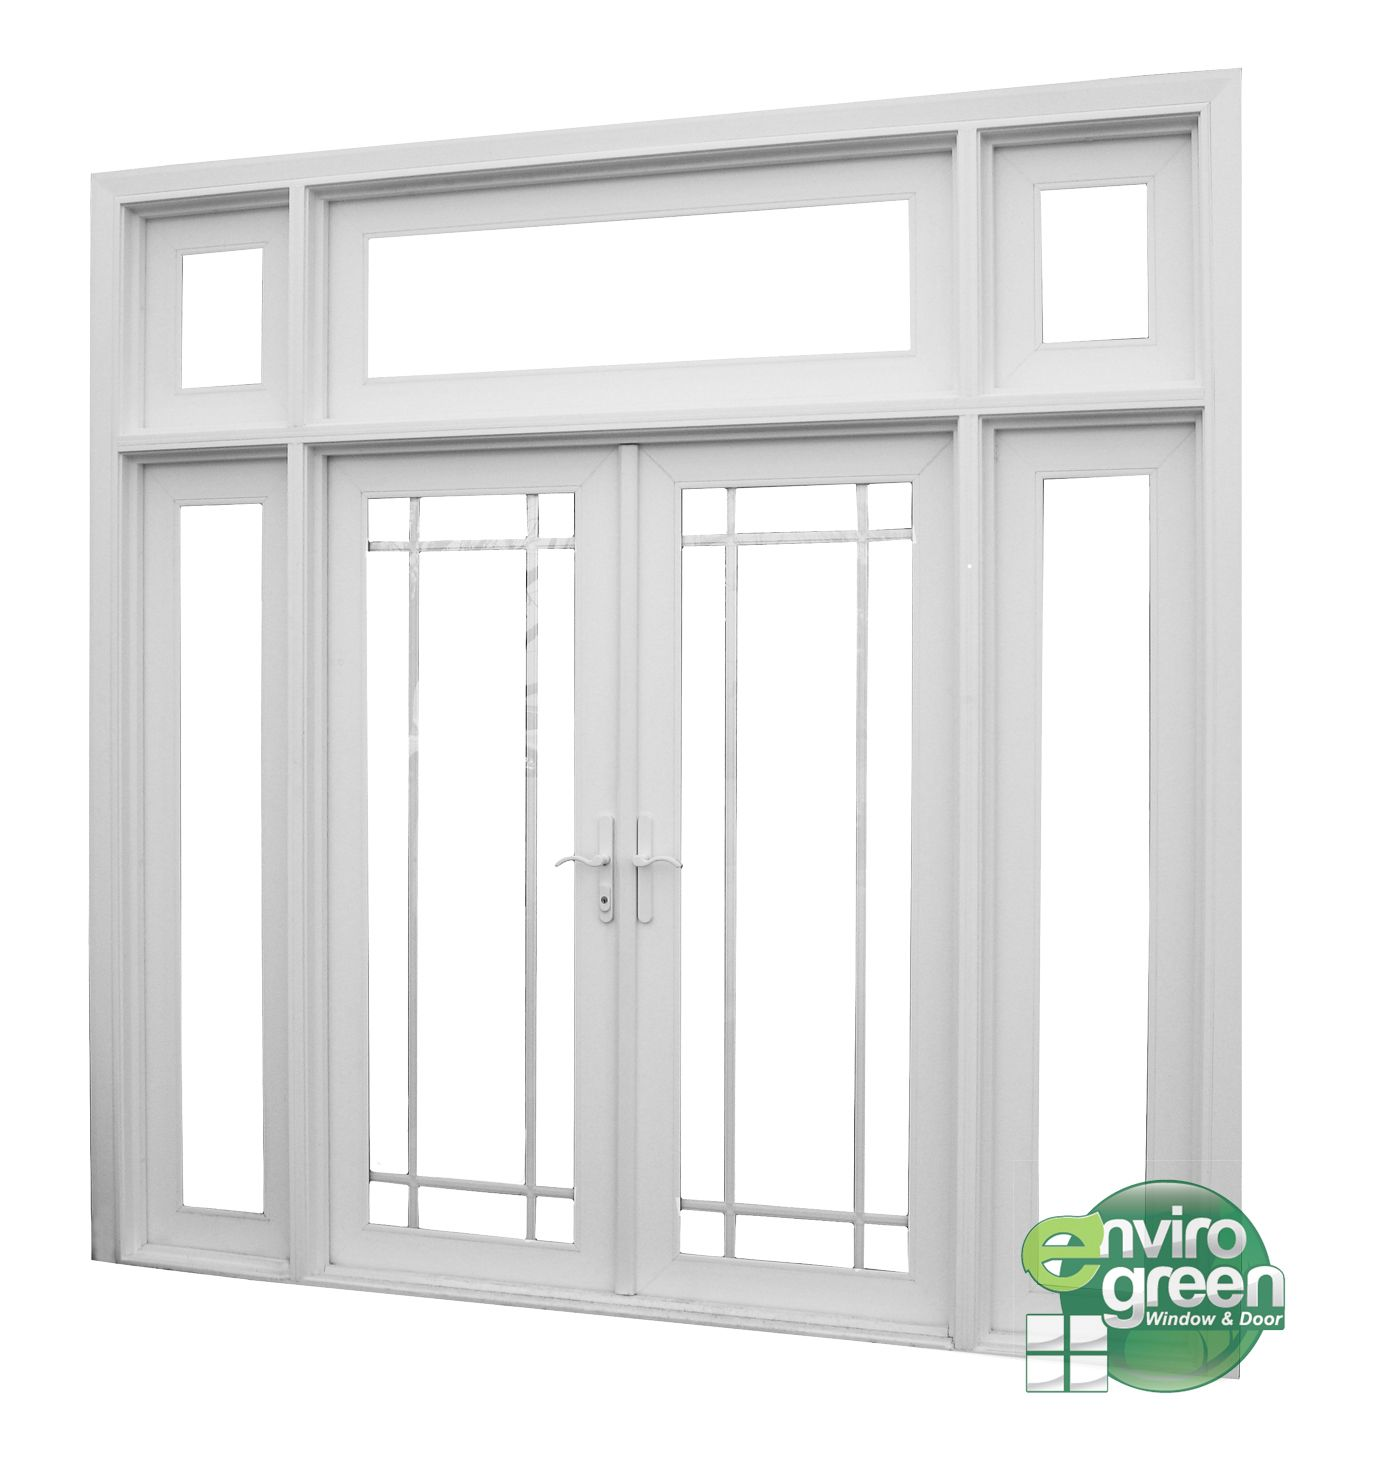 Single patio door with side lights french door for French doors with side windows that open